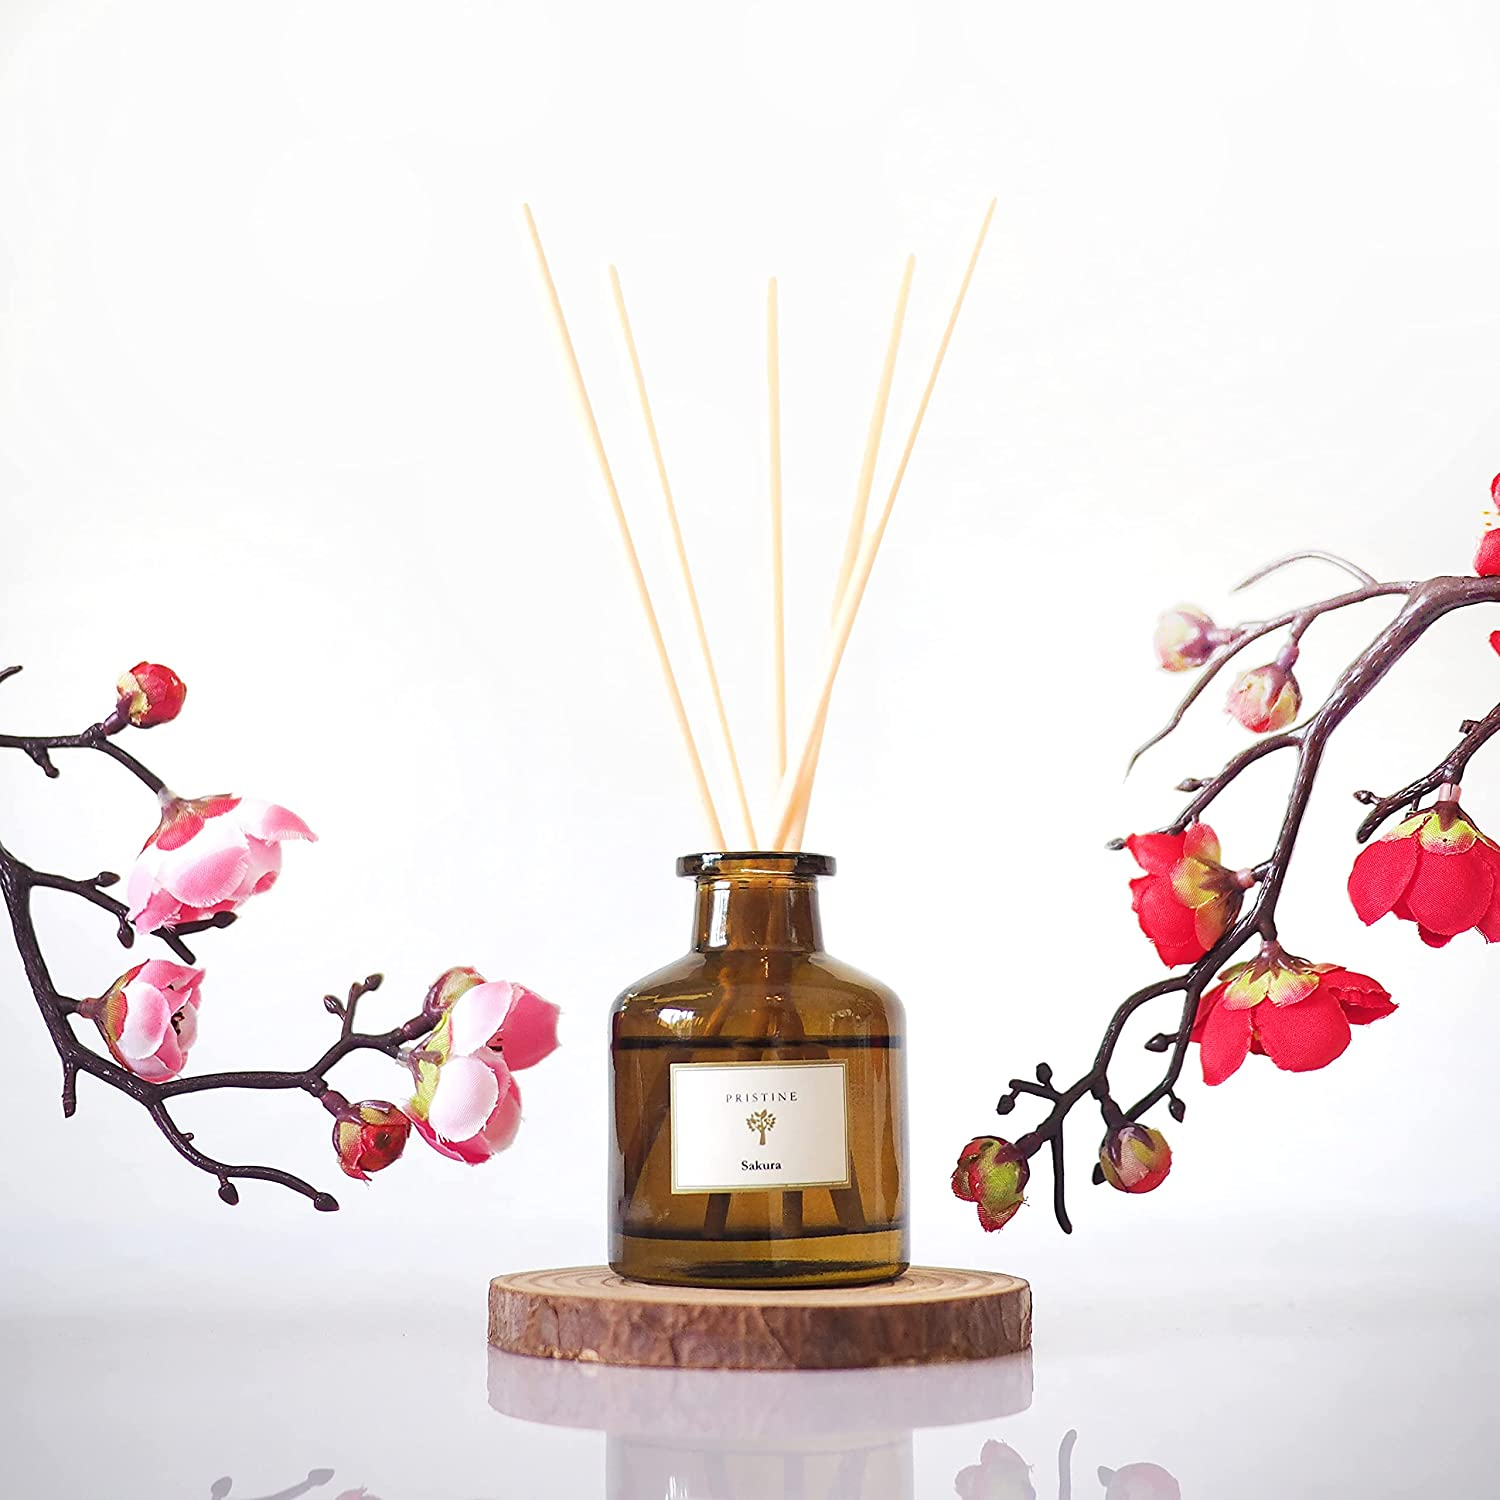 Reed Diffuser for Home | Smokey Sakura Fragrance Diffuser | Aromatherapy Diffuser Sticks | Scented Oil Diffuser Sticks | Reed Diffuser Set | Scented Sticks Diffuser | Perfect for Calming & Restoring